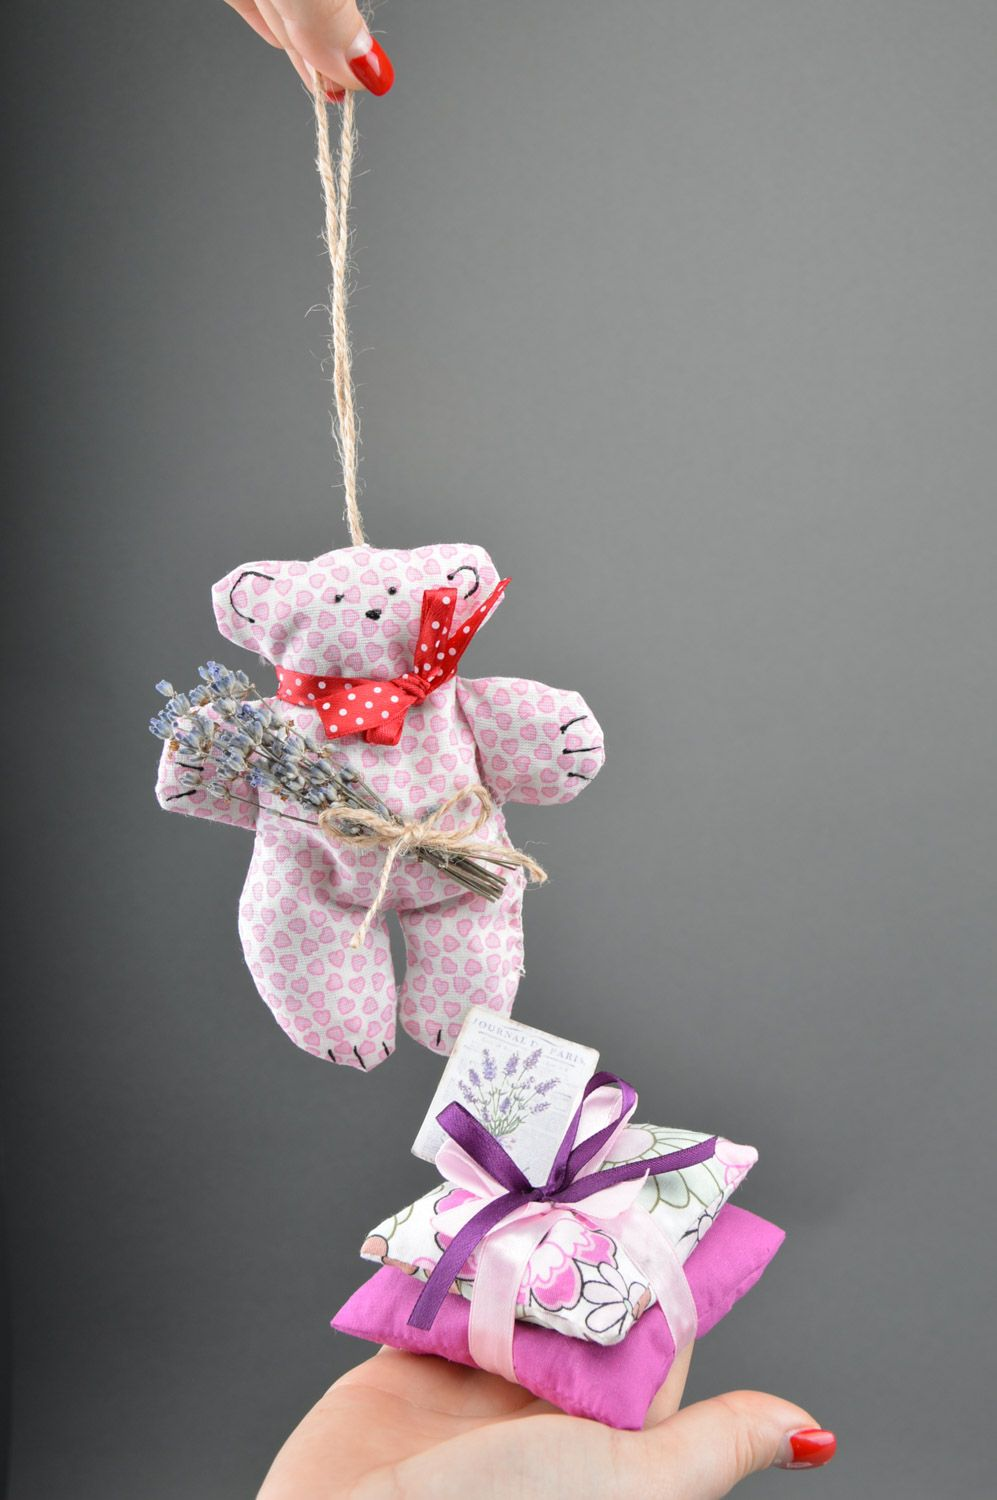 Set of handmade sachet pillows with herbs and soft fabric toy bear 3 items photo 4